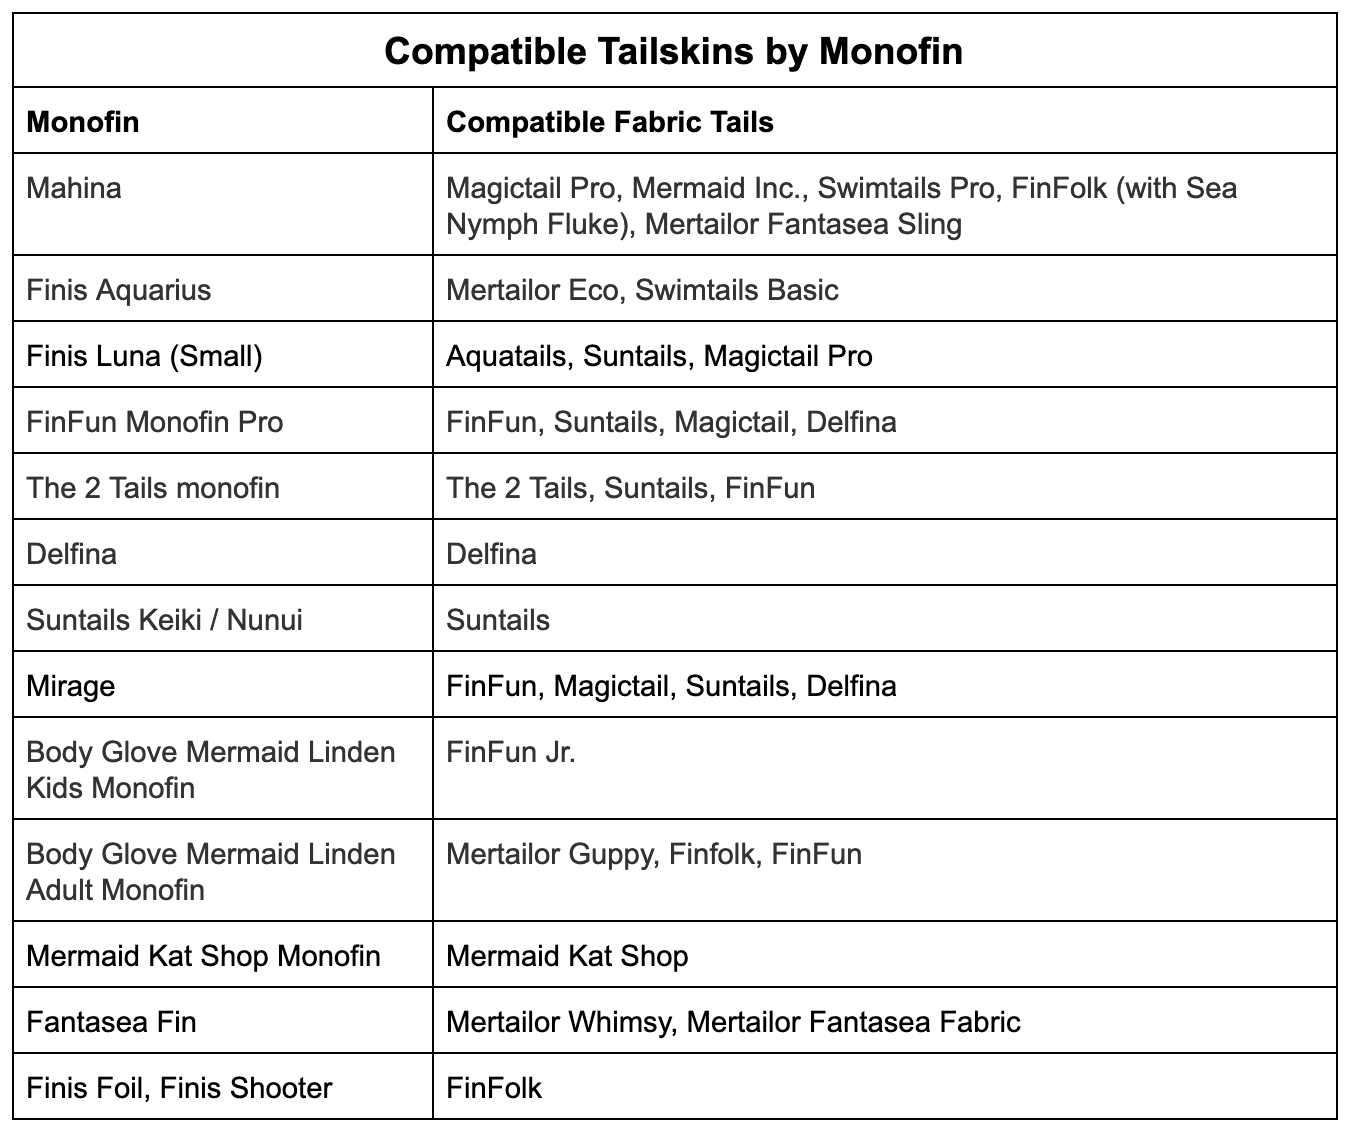 Name:  Compatible Tailskins by Monofin.png